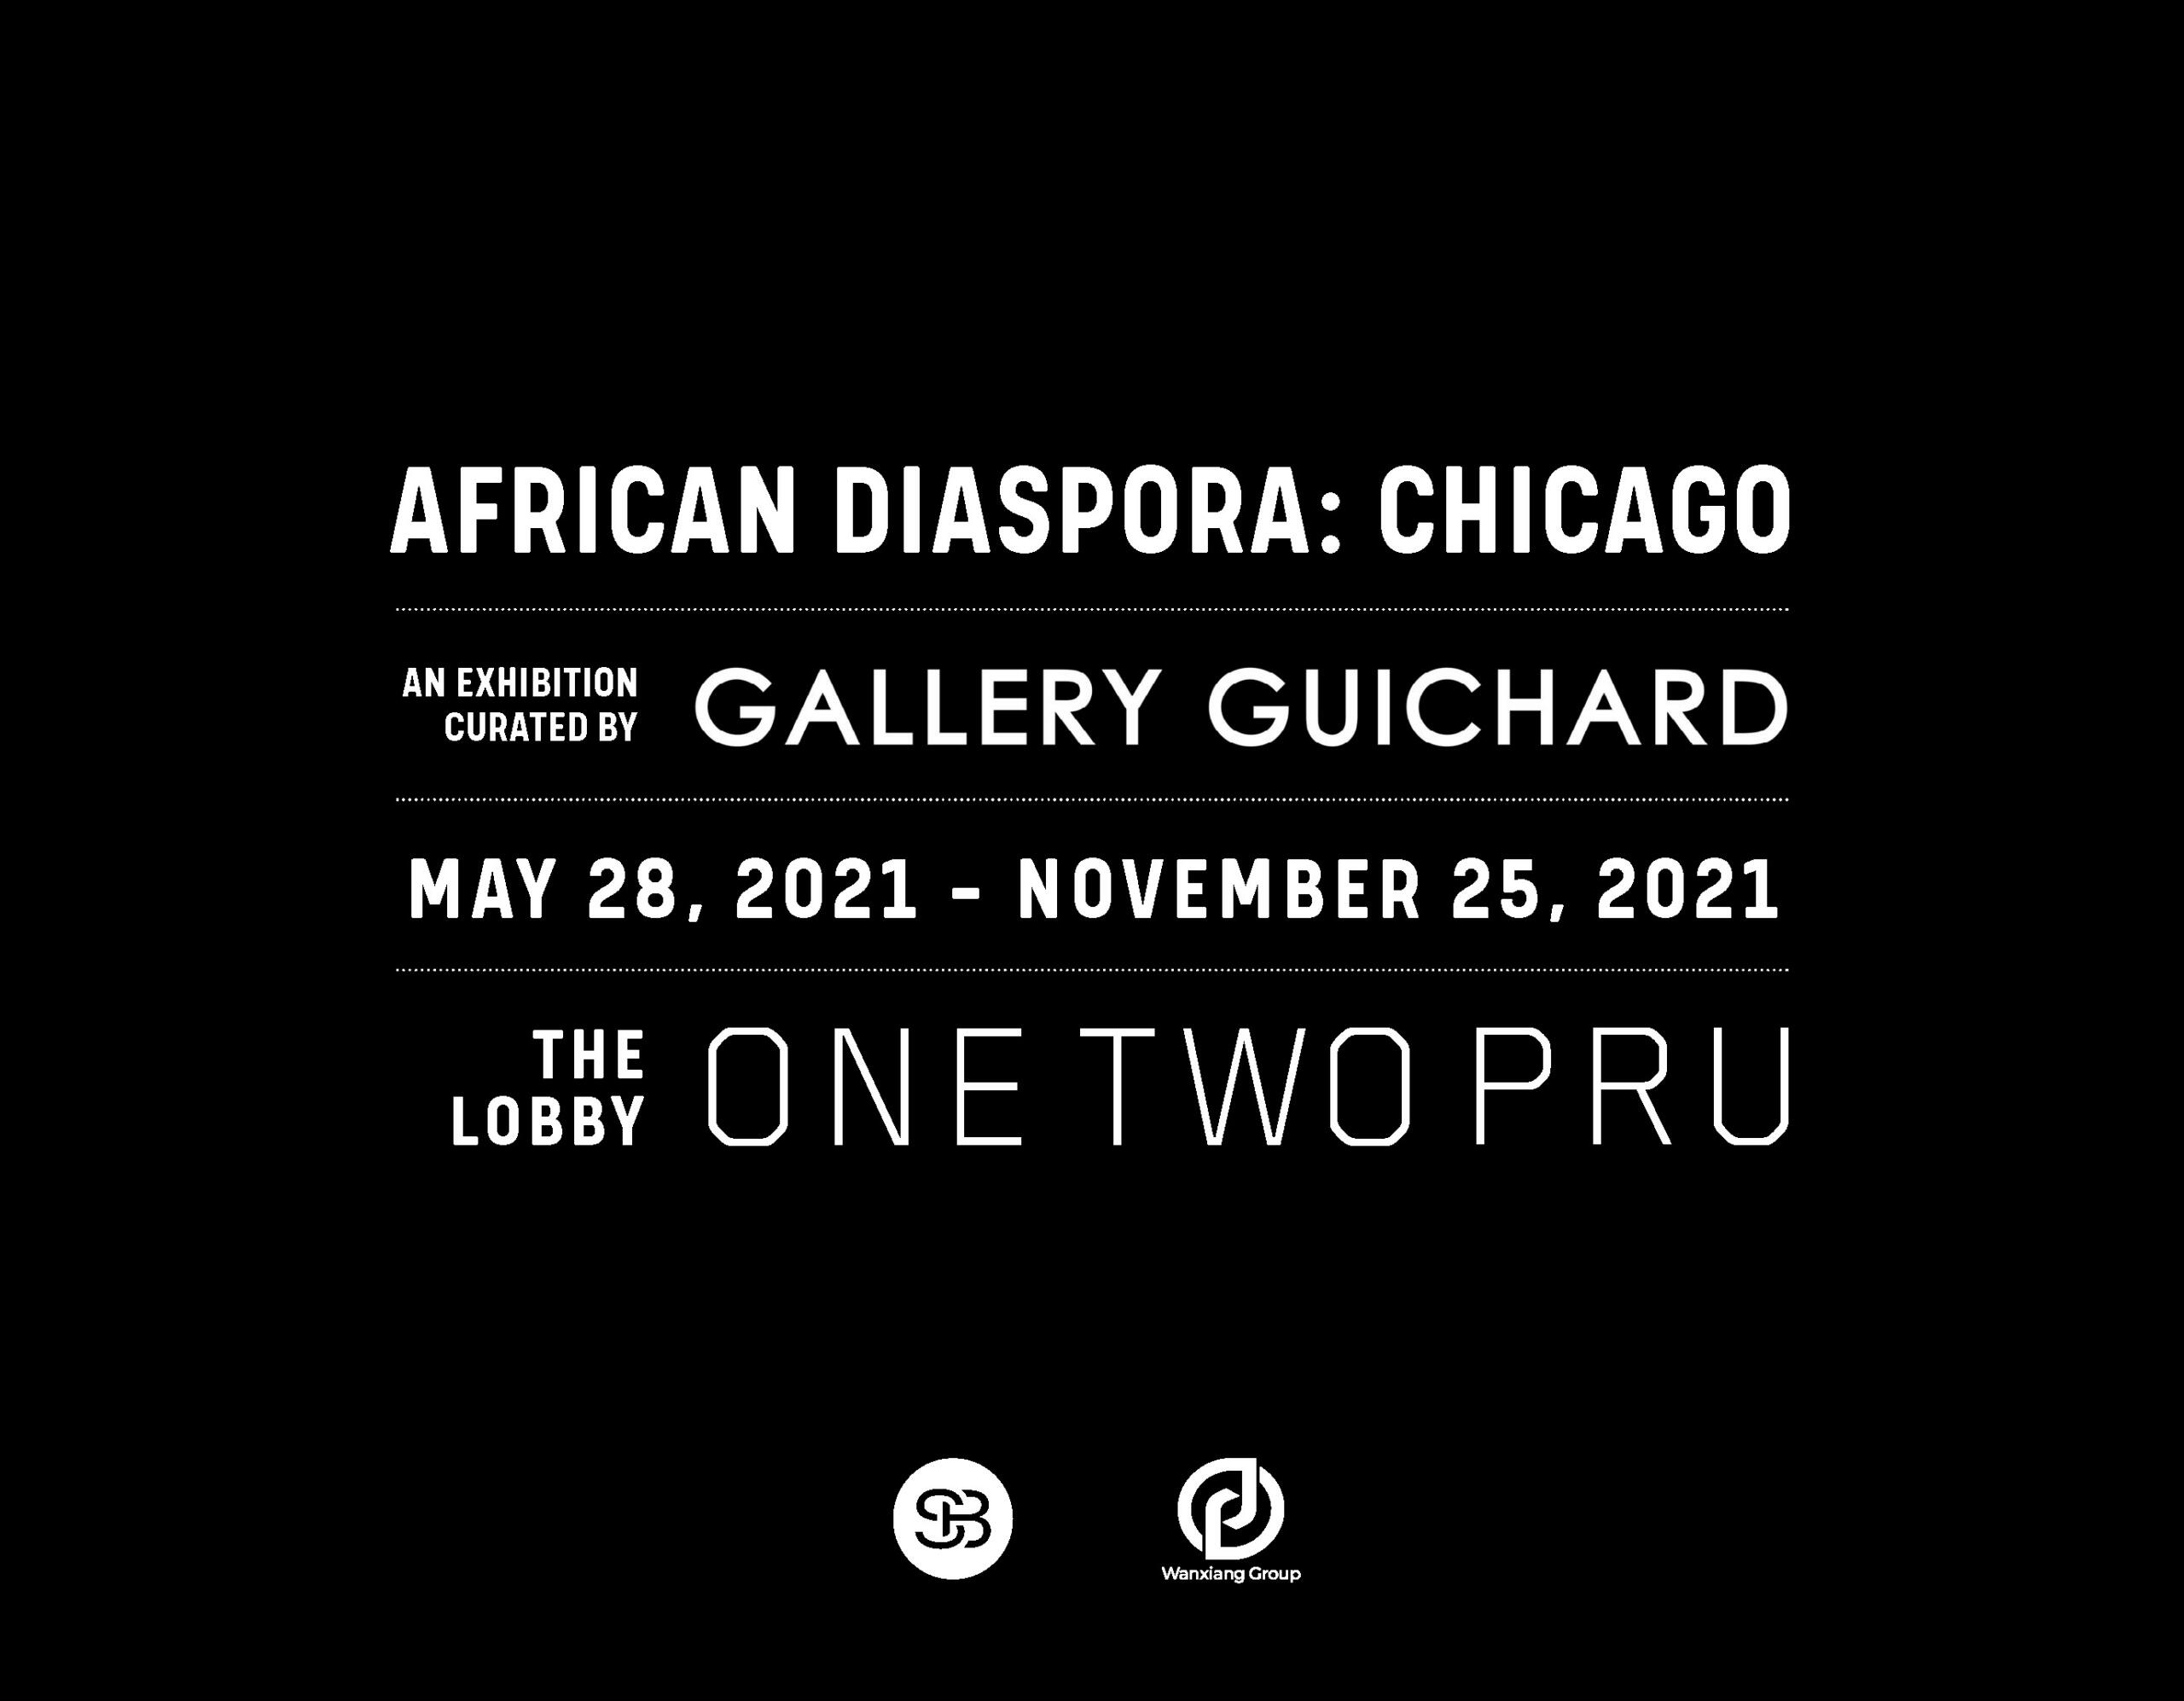 African Diaspora: Chicago | An Exhibition Curated by Gallery Guichard